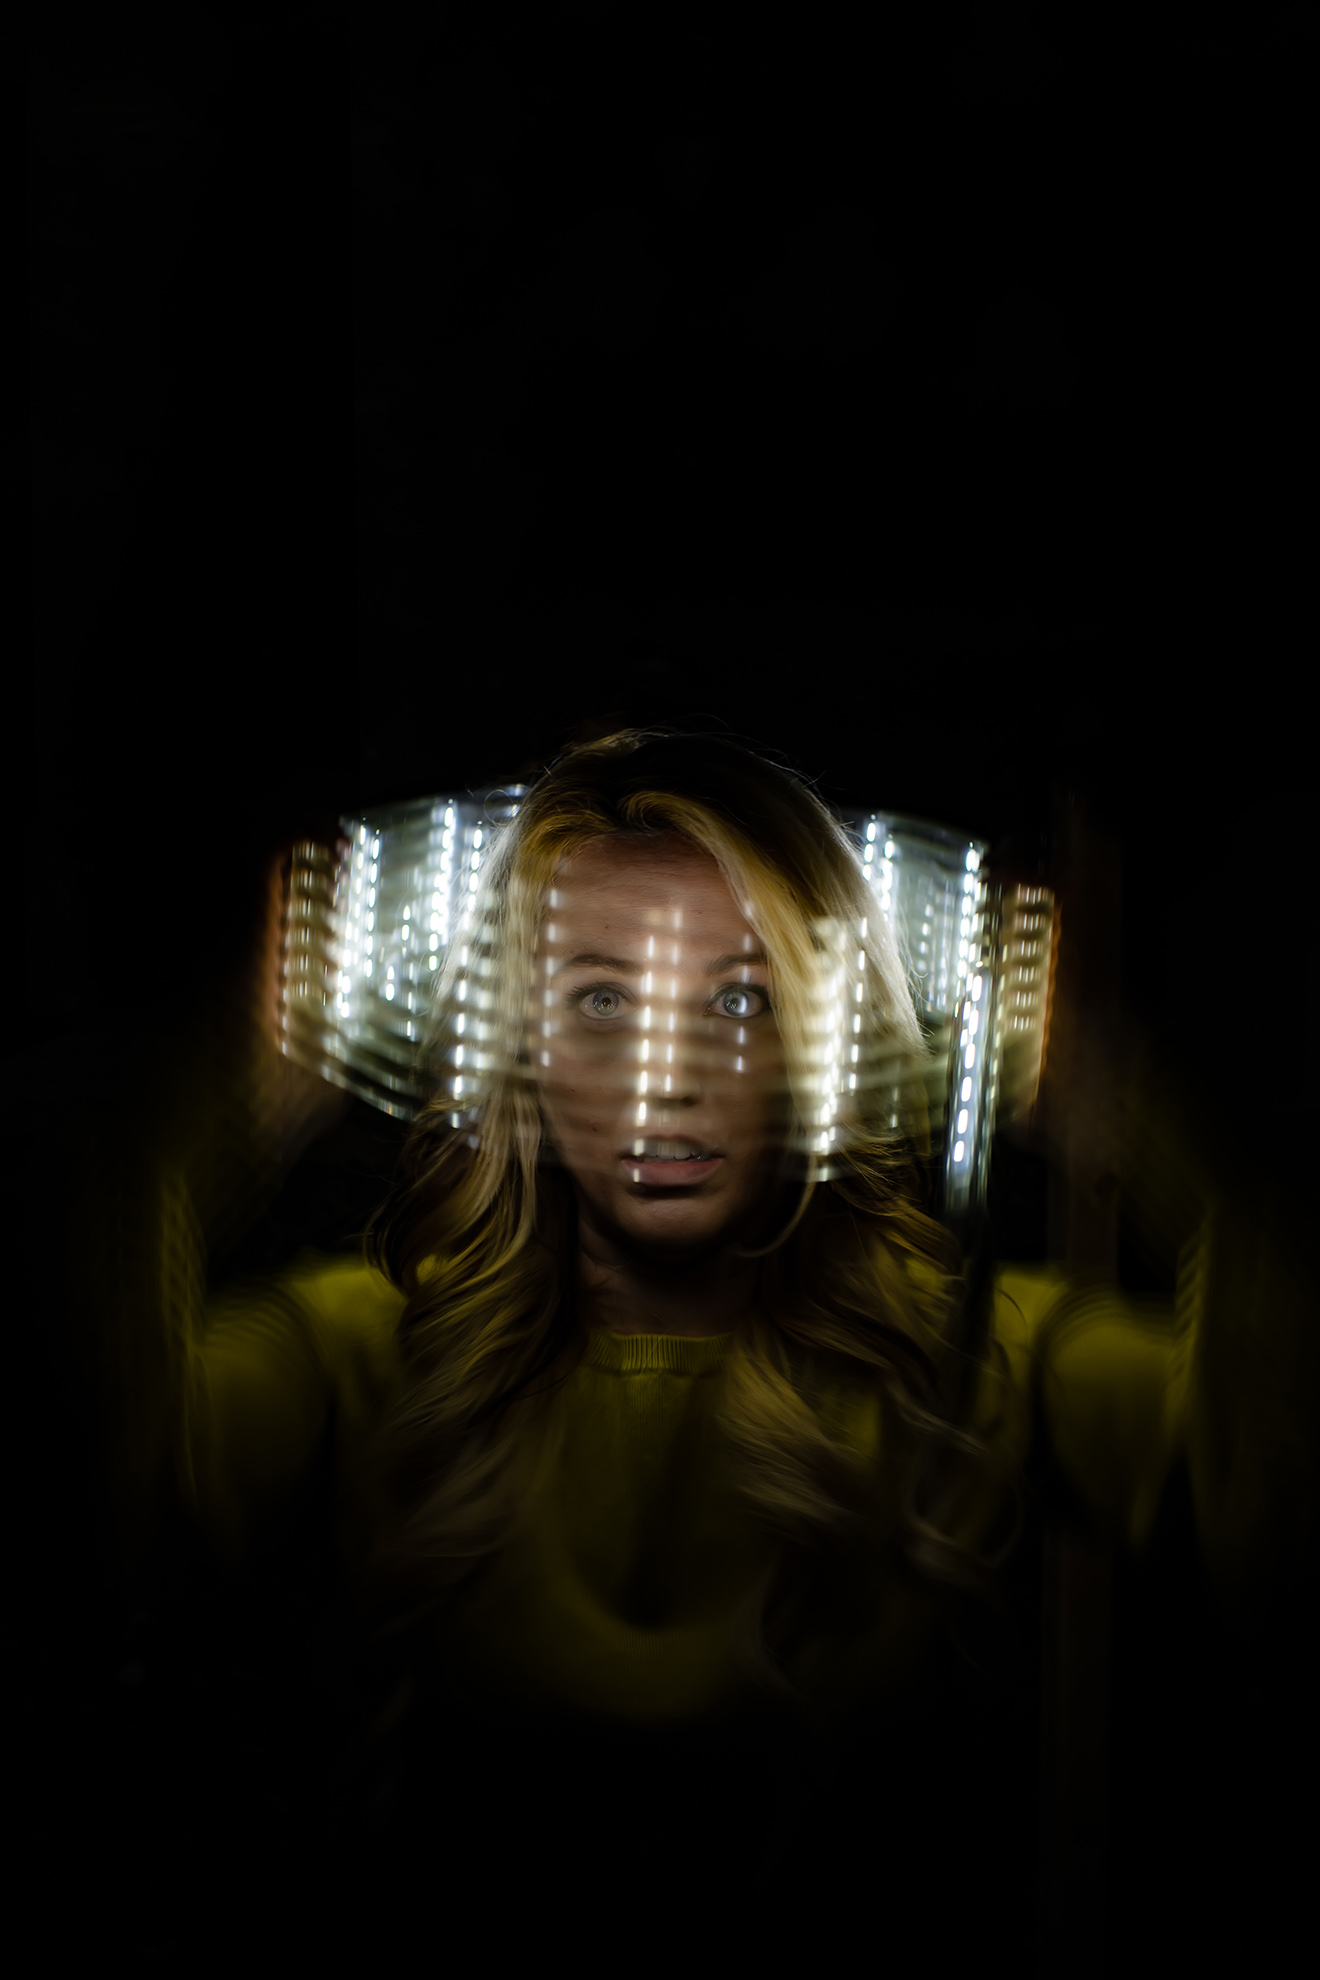 Circular light wrap around a woman's head to convey the pandemonium of thoughts in her mind.